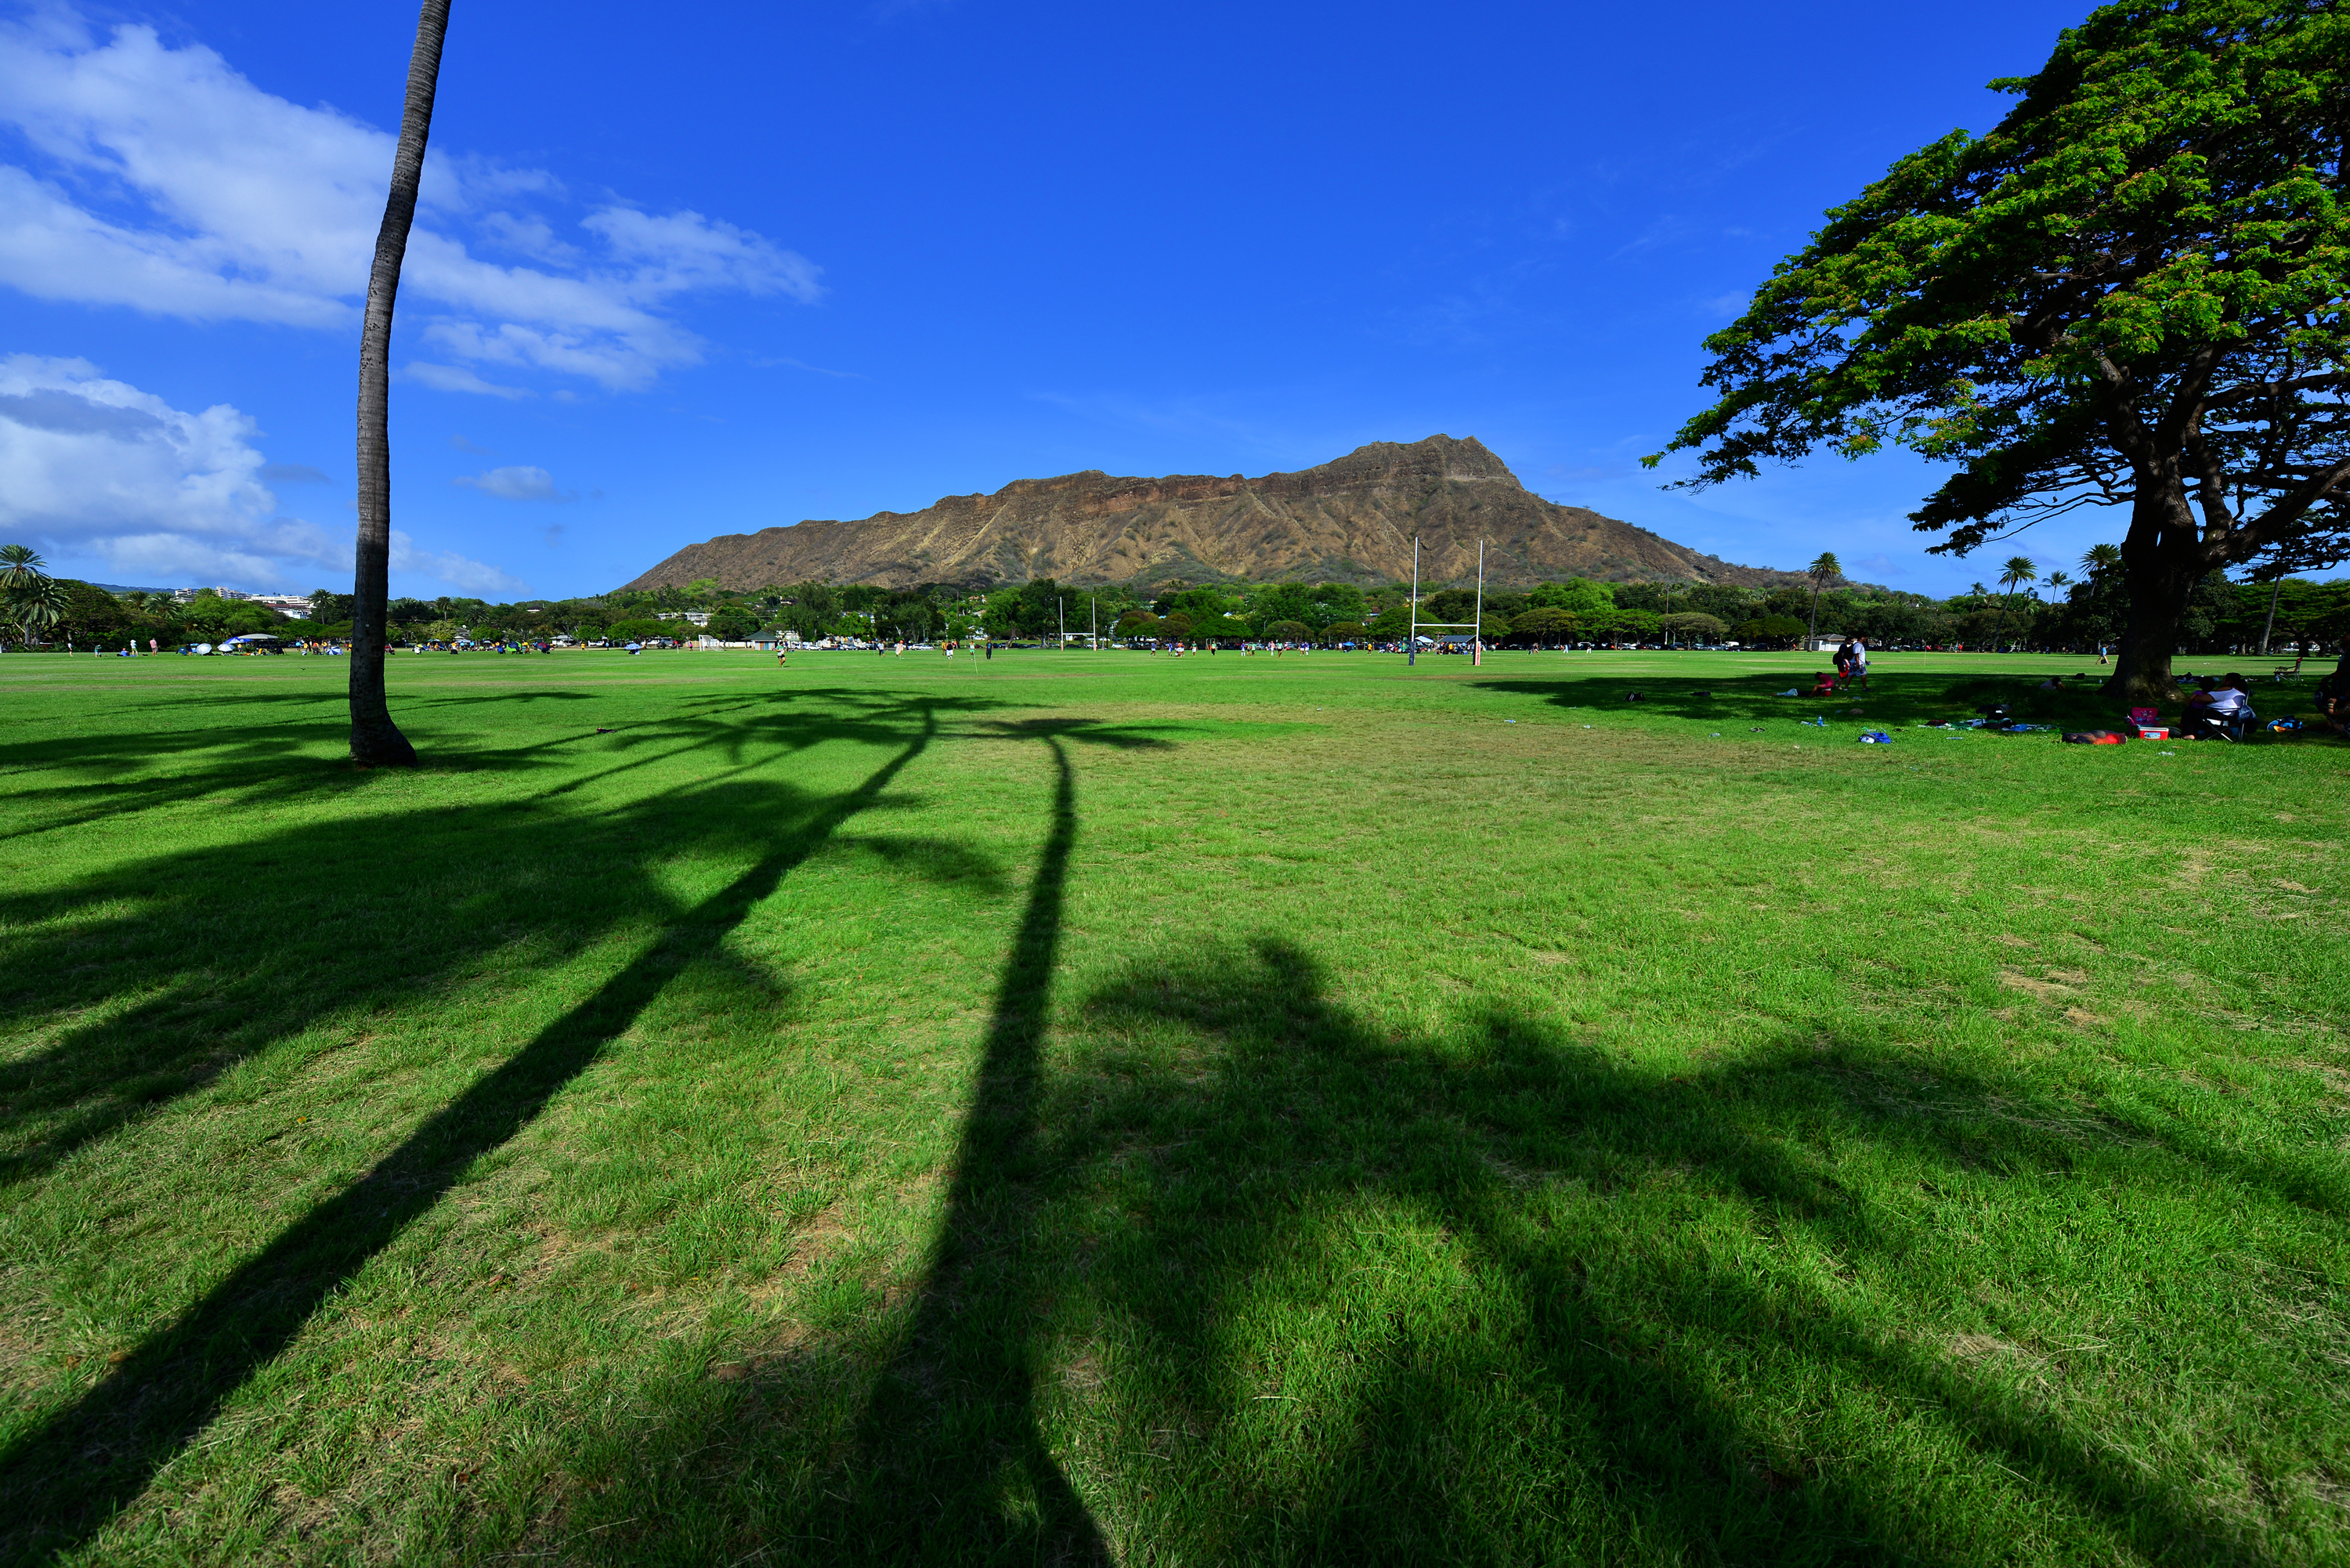 The Diamond Head, Kapiolani Park